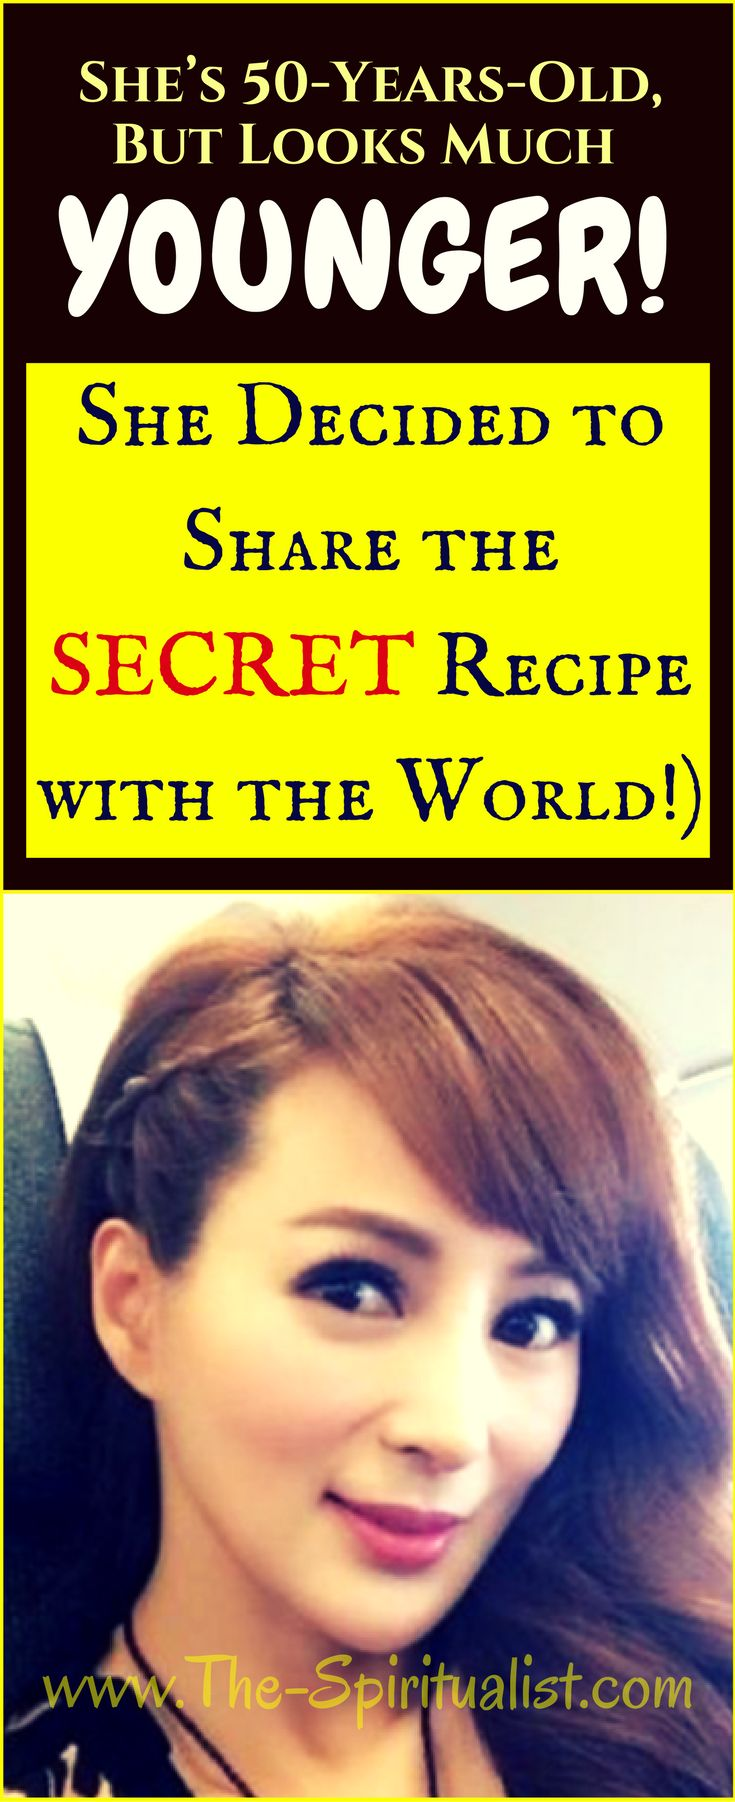 This Woman is 50-Years-Old, But Looks Much Younger (She Decided to Share the SECRET Recipe with the World!)